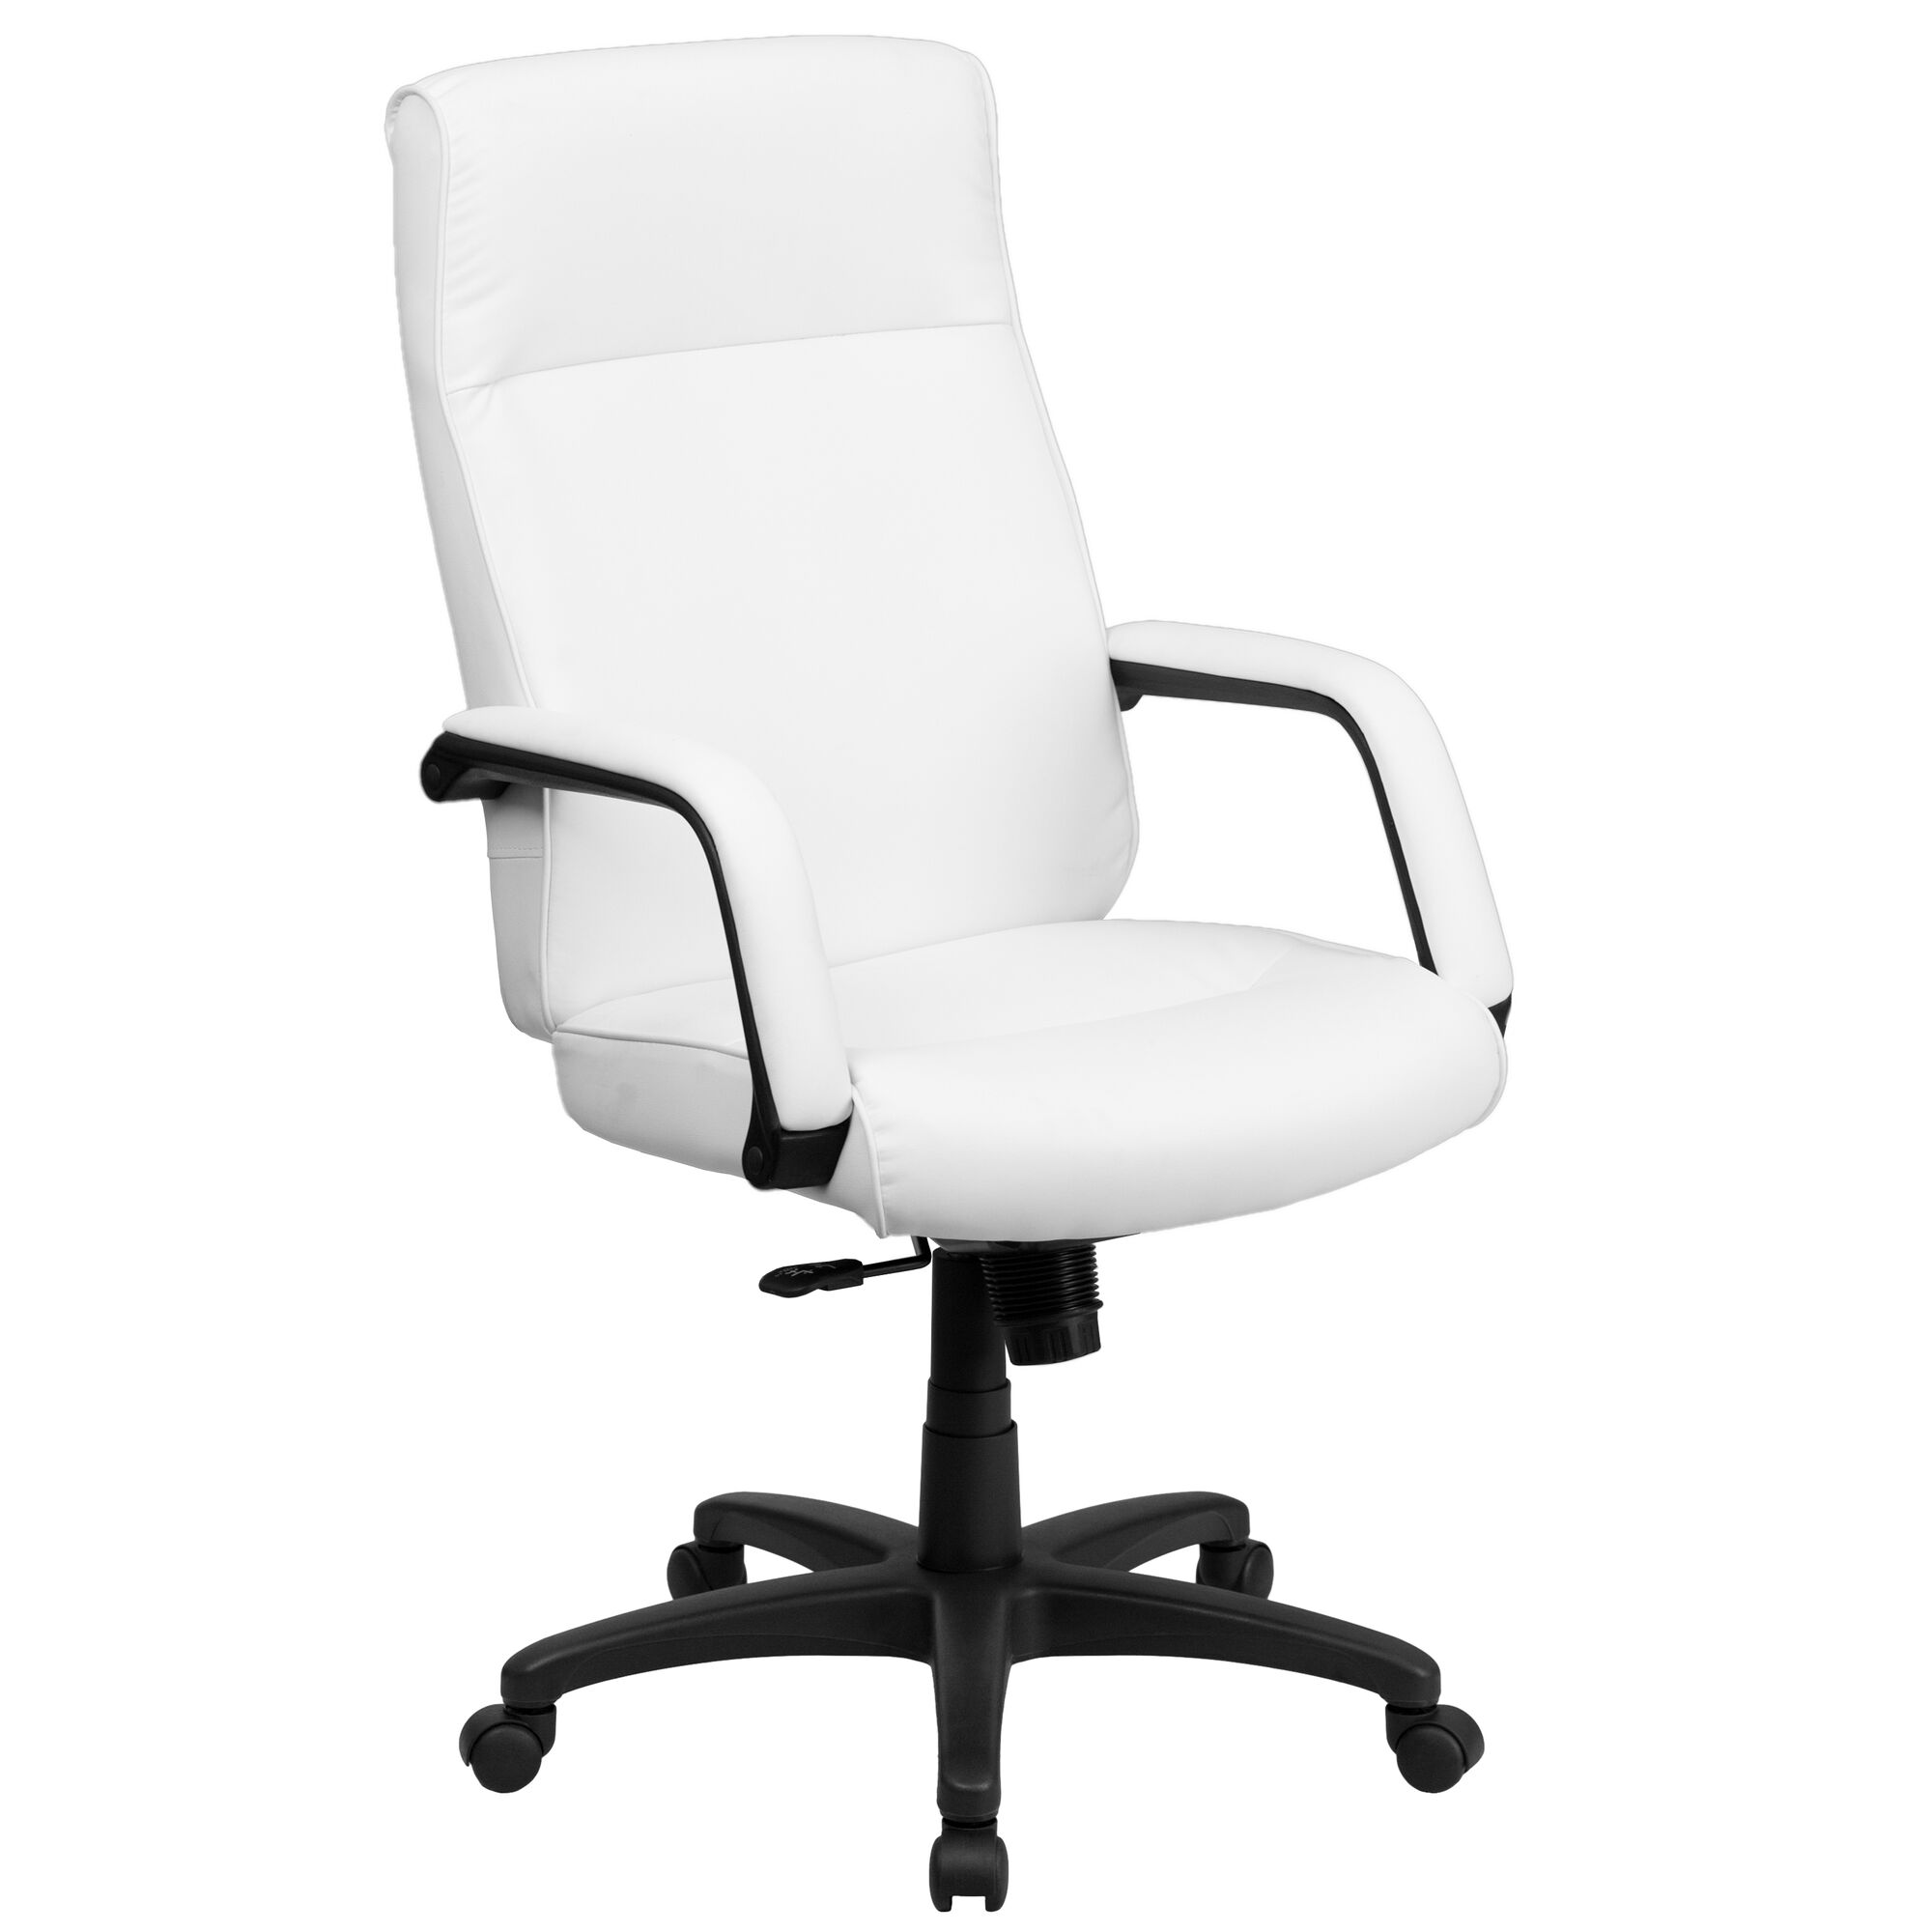 High Back White Leather Executive Swivel Ergonomic Office Chair with Memory  Foam Padding and Arms